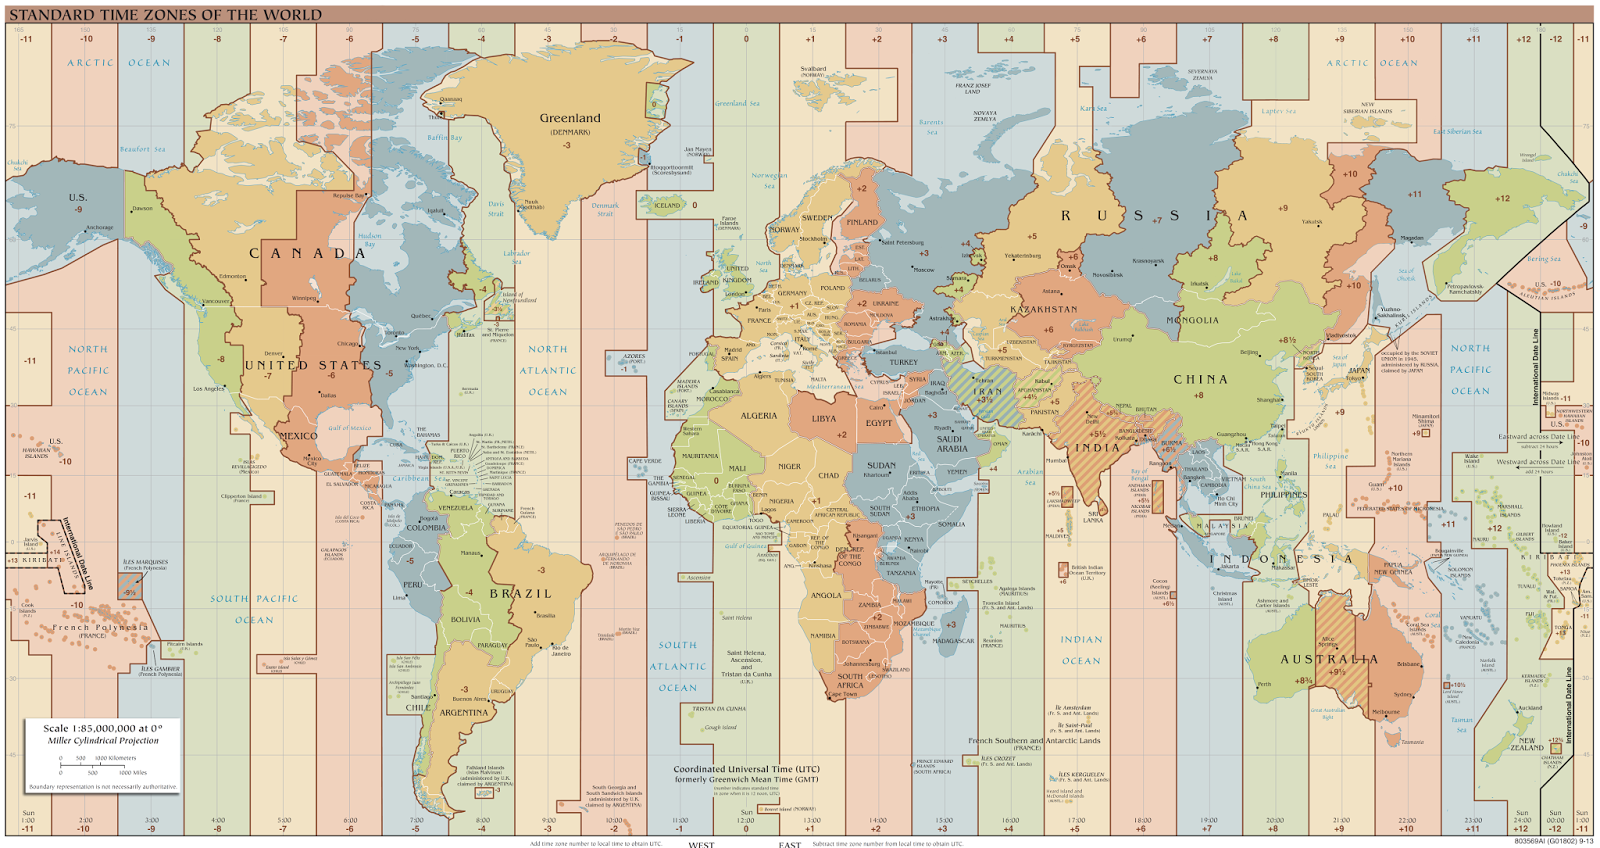 A time zone map of the world, showing all the world's standard time zones as of the beginning of 2017, with UTC offsets.